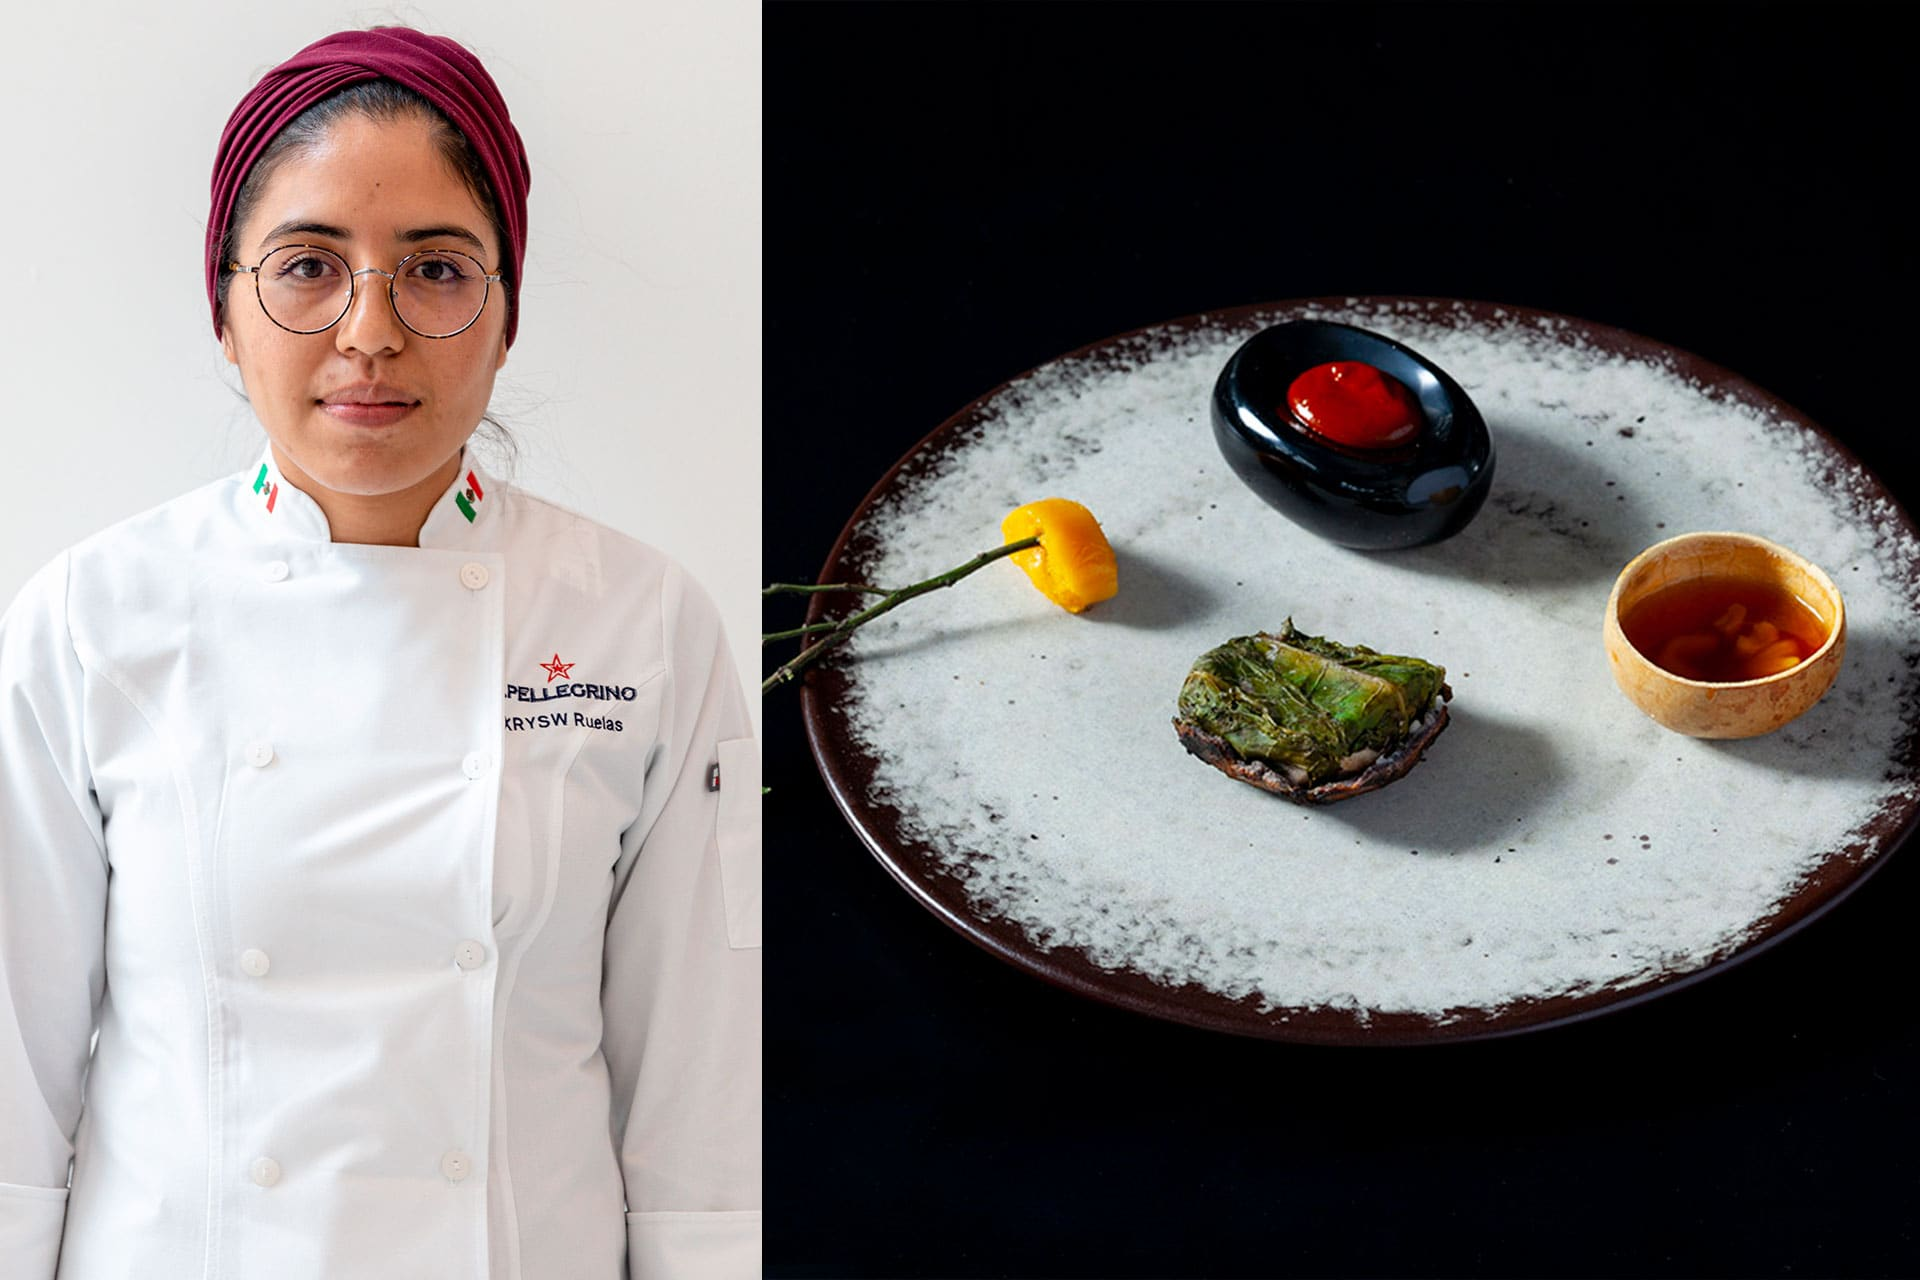 Xrysw Ruelas from Mexico wins with her Signature Dish Milpa y Mar